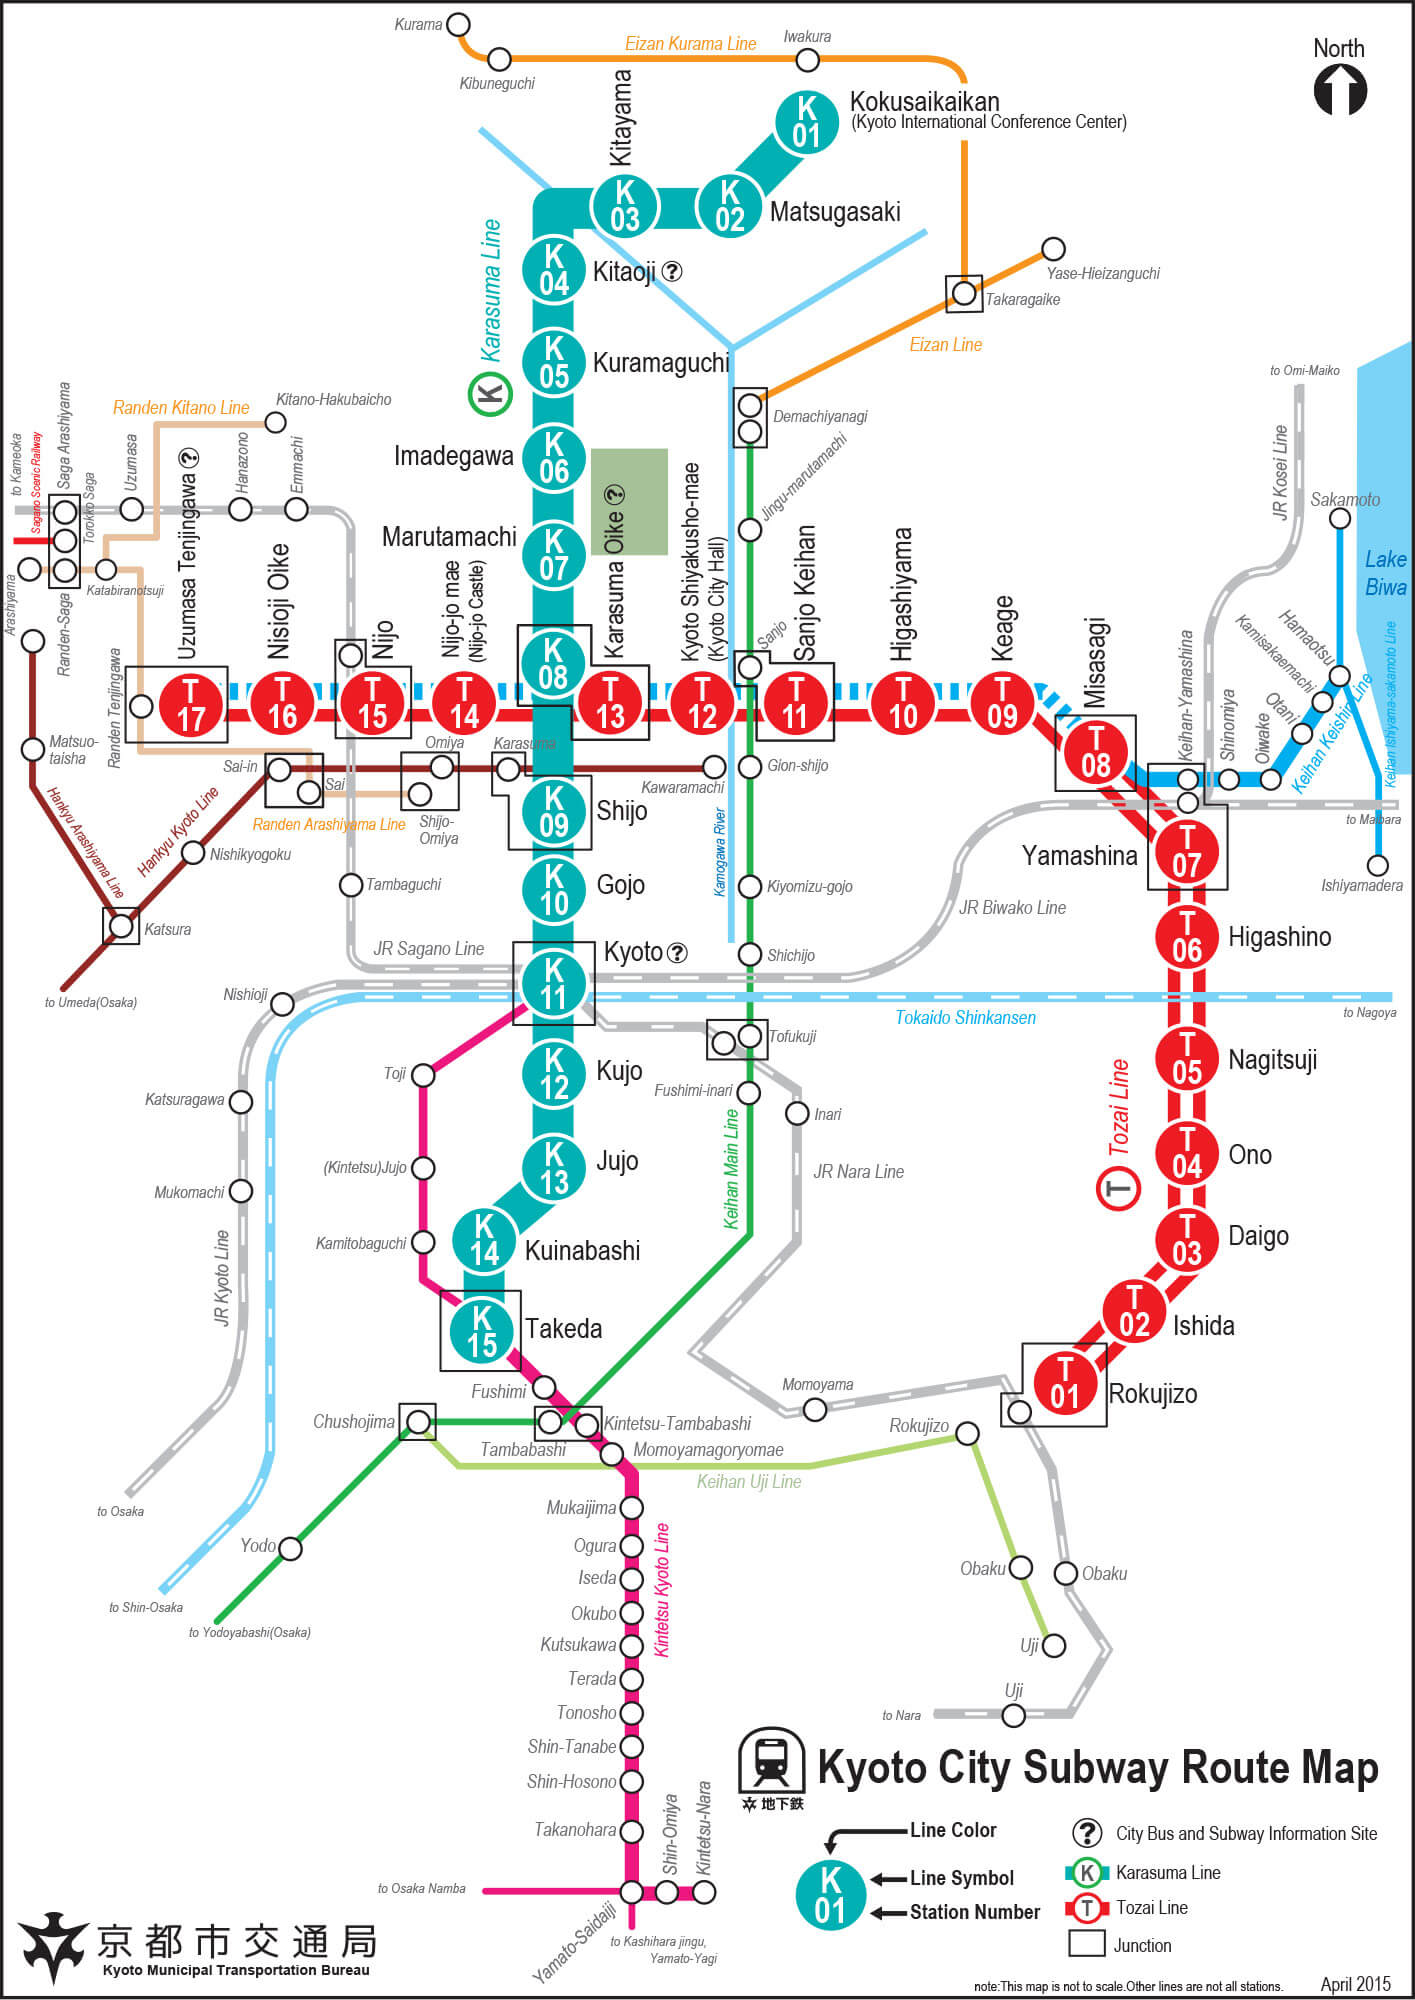 A Guide to Riding the Kyoto Buses on portland bus route map, manila bus route map, busan bus route map, athens bus route map, hamamatsu bus route map, lima bus route map, singapore bus route map, lyon bus route map, berlin bus route map, dubai bus route map, washington bus route map, hanoi bus route map, stockholm bus route map, frankfurt bus route map, rome bus route map, xian bus route map, adelaide bus route map, santiago bus route map, takayama bus route map, wellington bus route map,